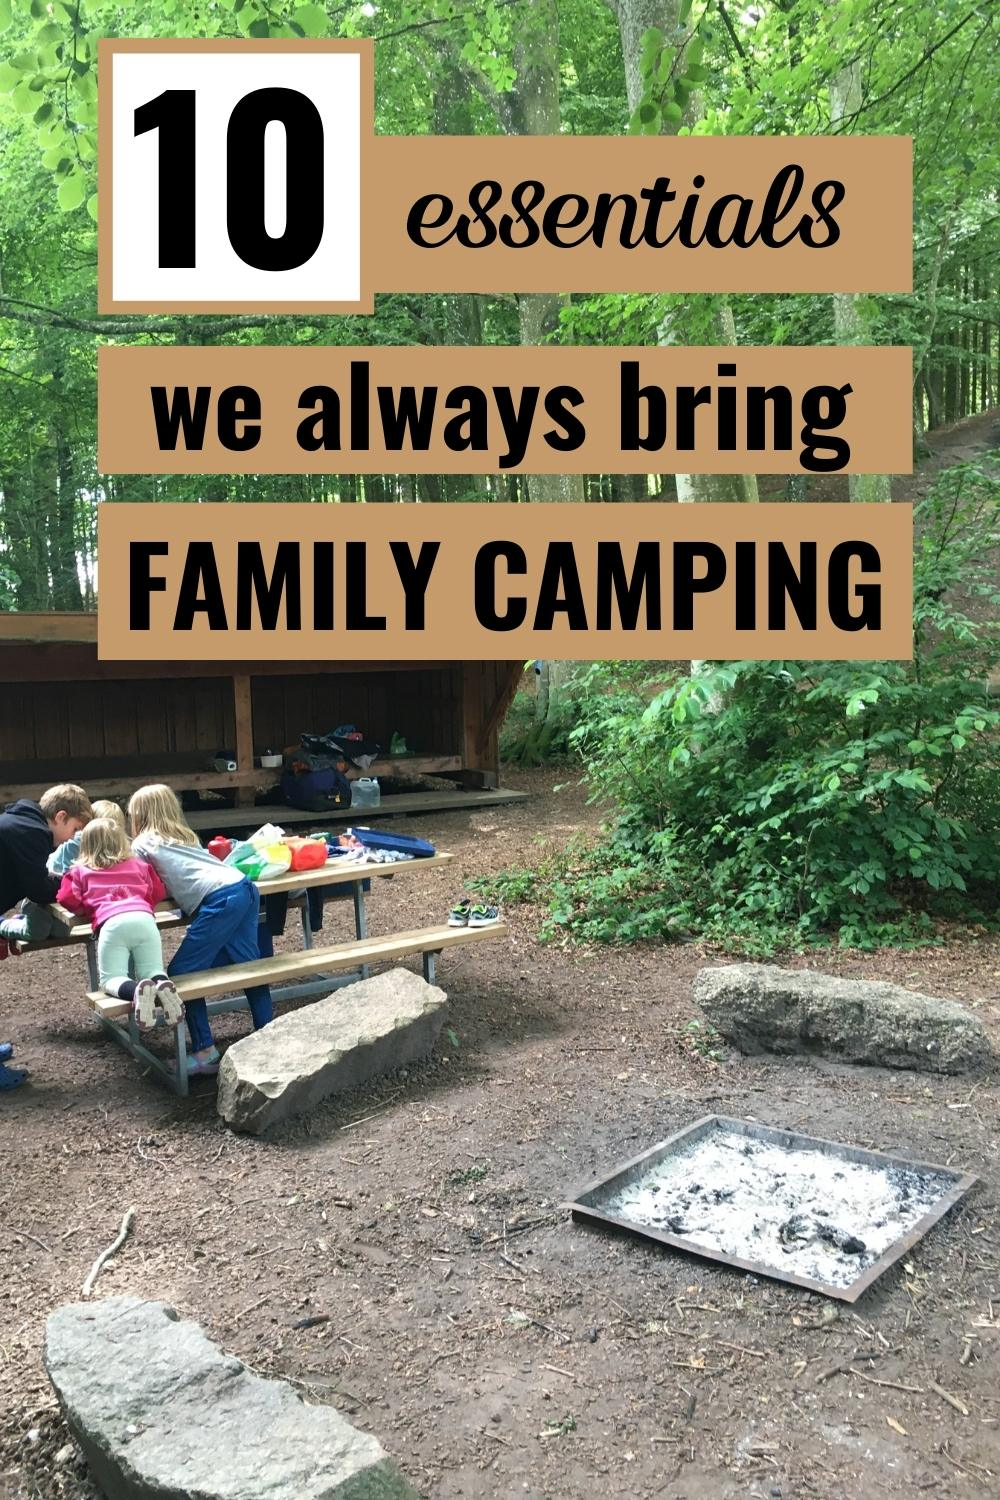 family camping site with 4 kids - pinterest graphic picture with text